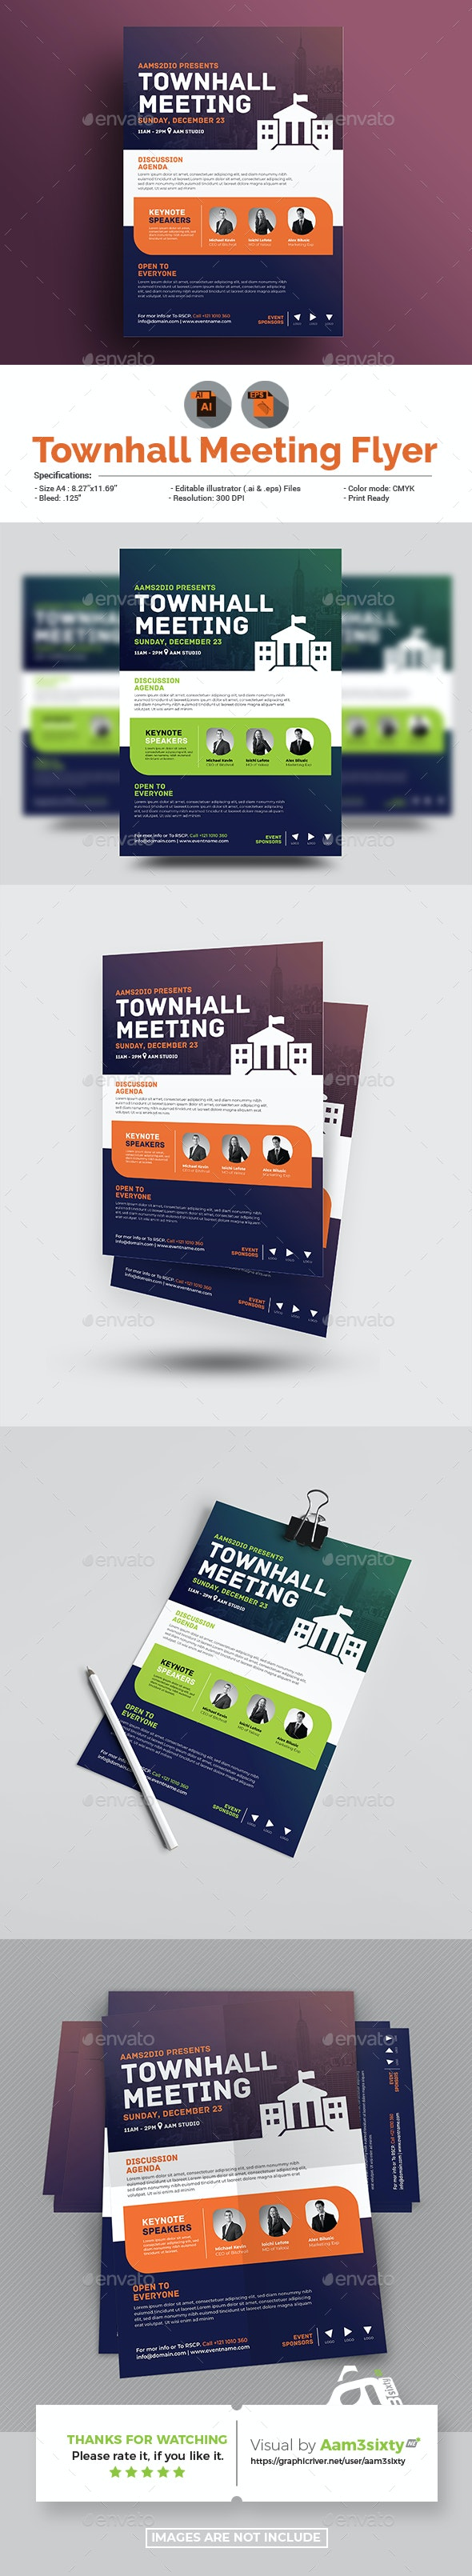 Townhall Event Flyer Template - Events Flyers